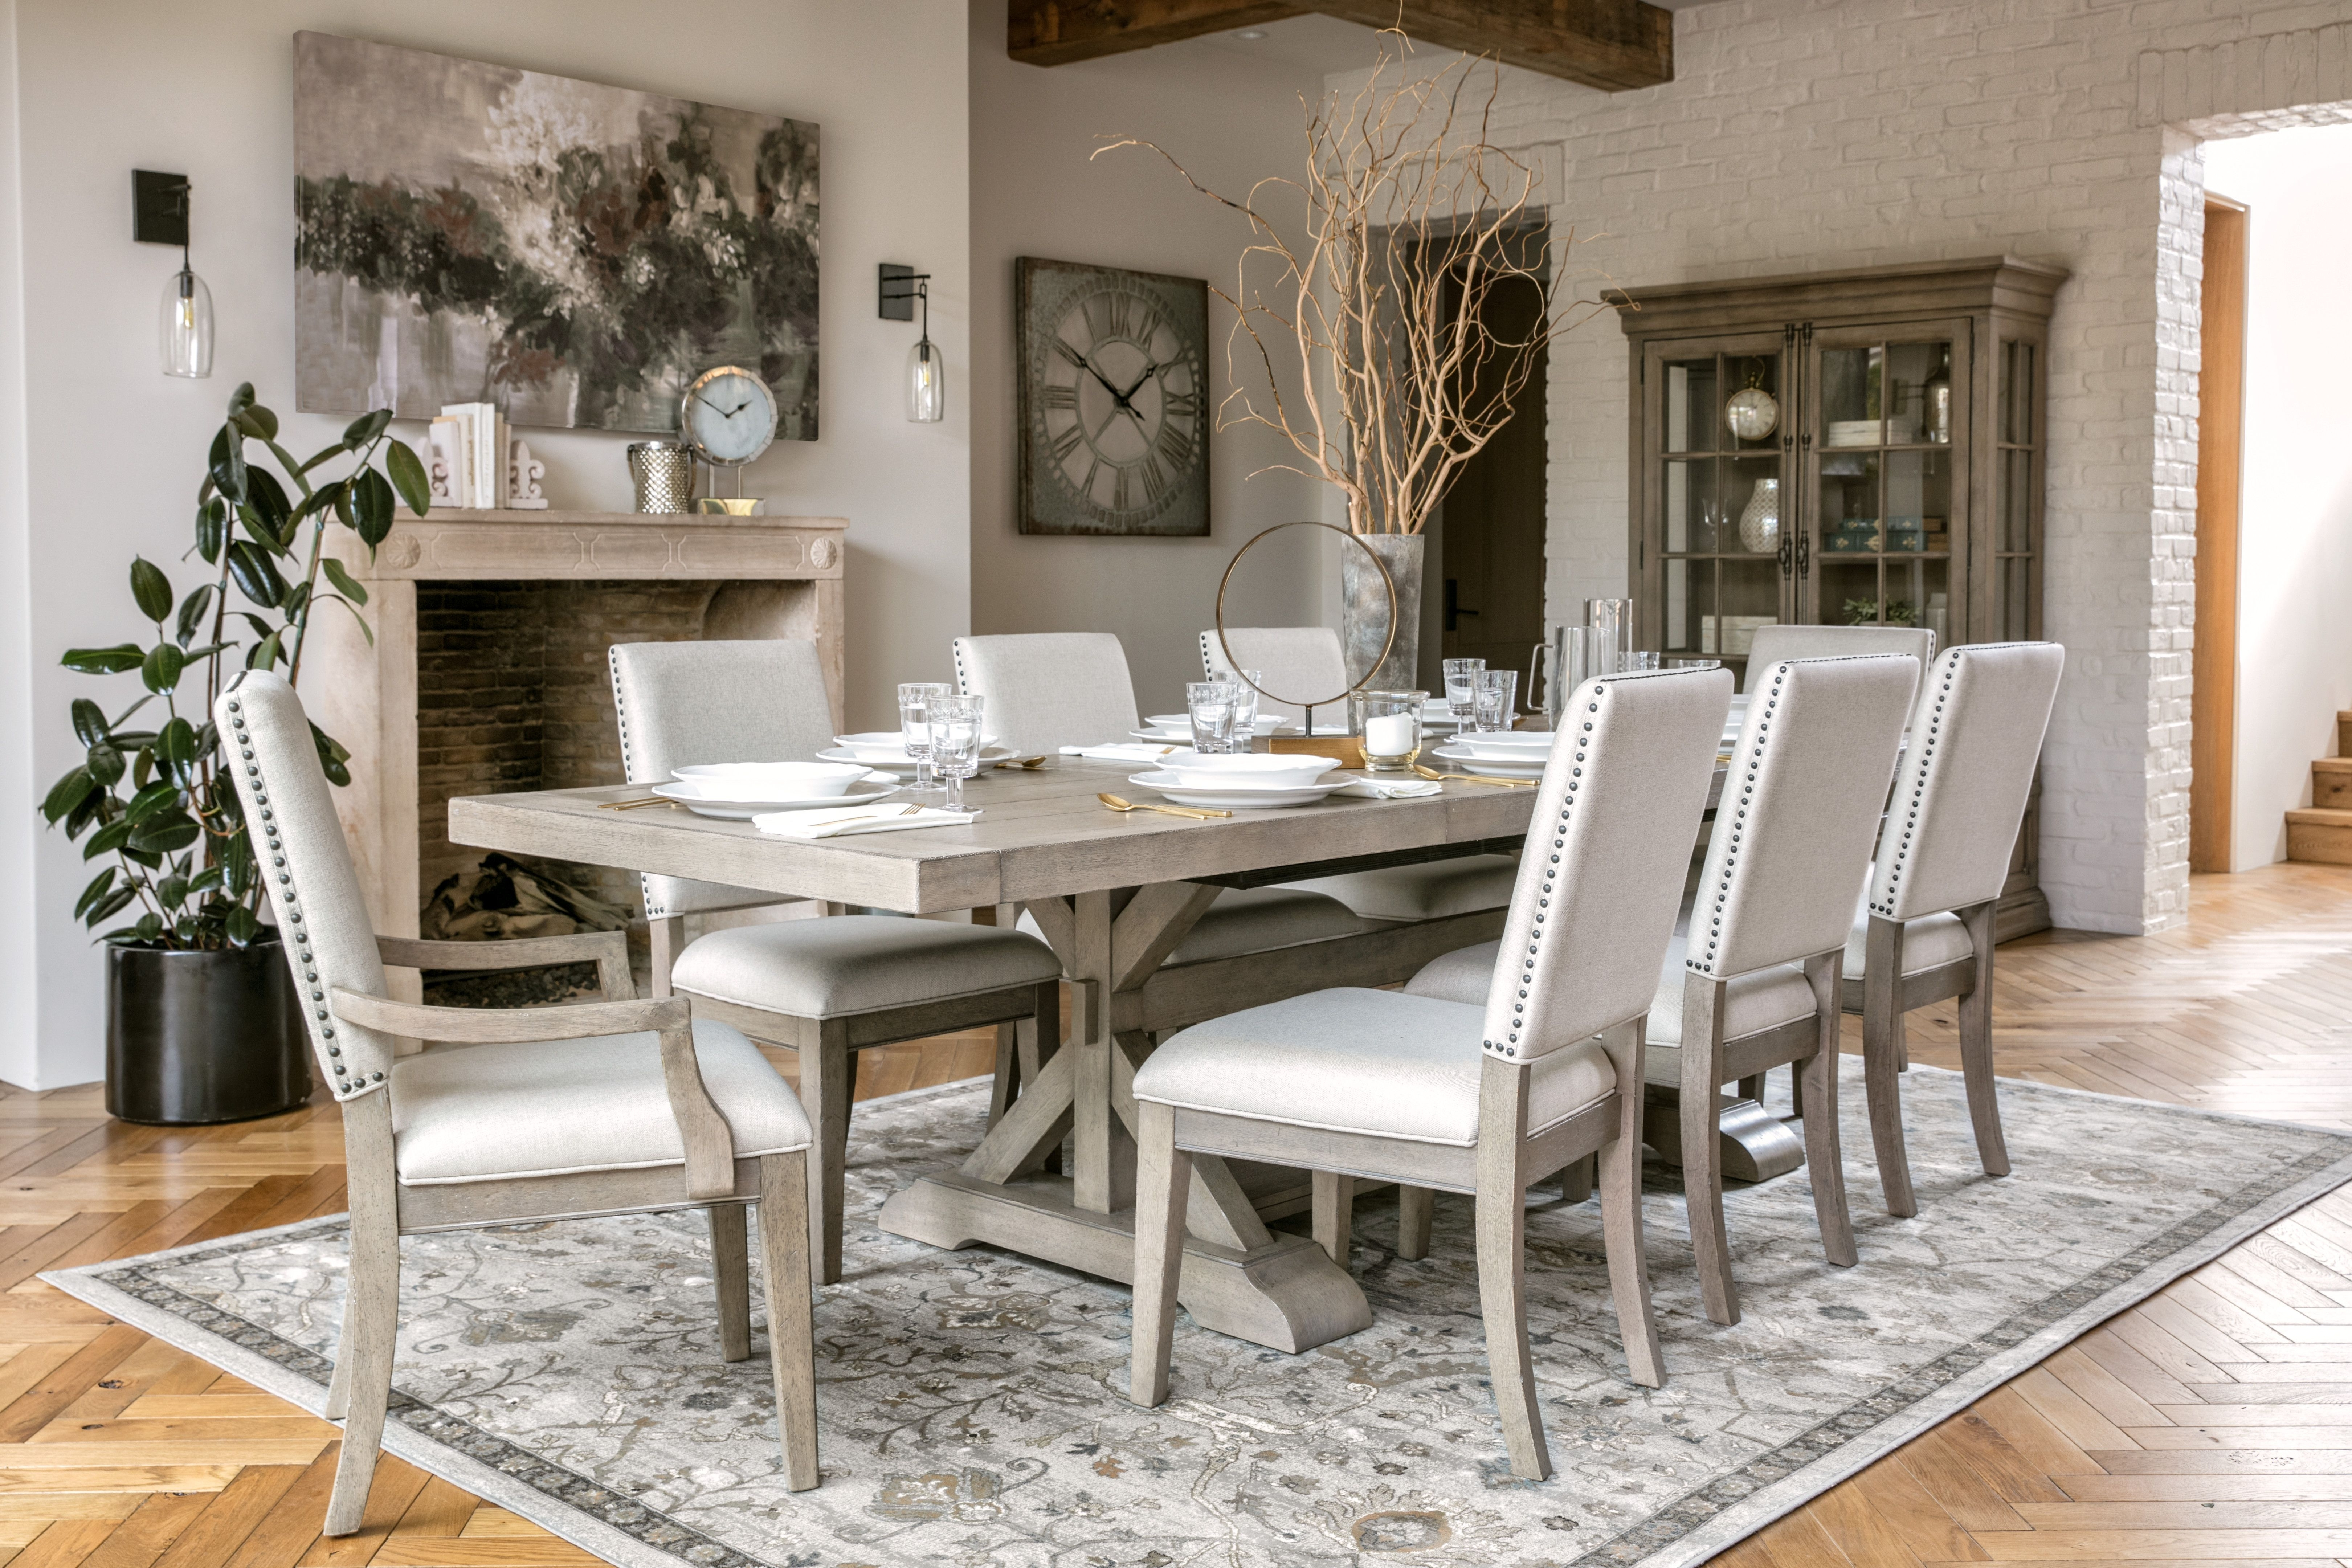 Nailhead Trim, Side Chair And Throughout Trendy Norwood 7 Piece Rectangular Extension Dining Sets With Bench, Host & Side Chairs (View 14 of 25)